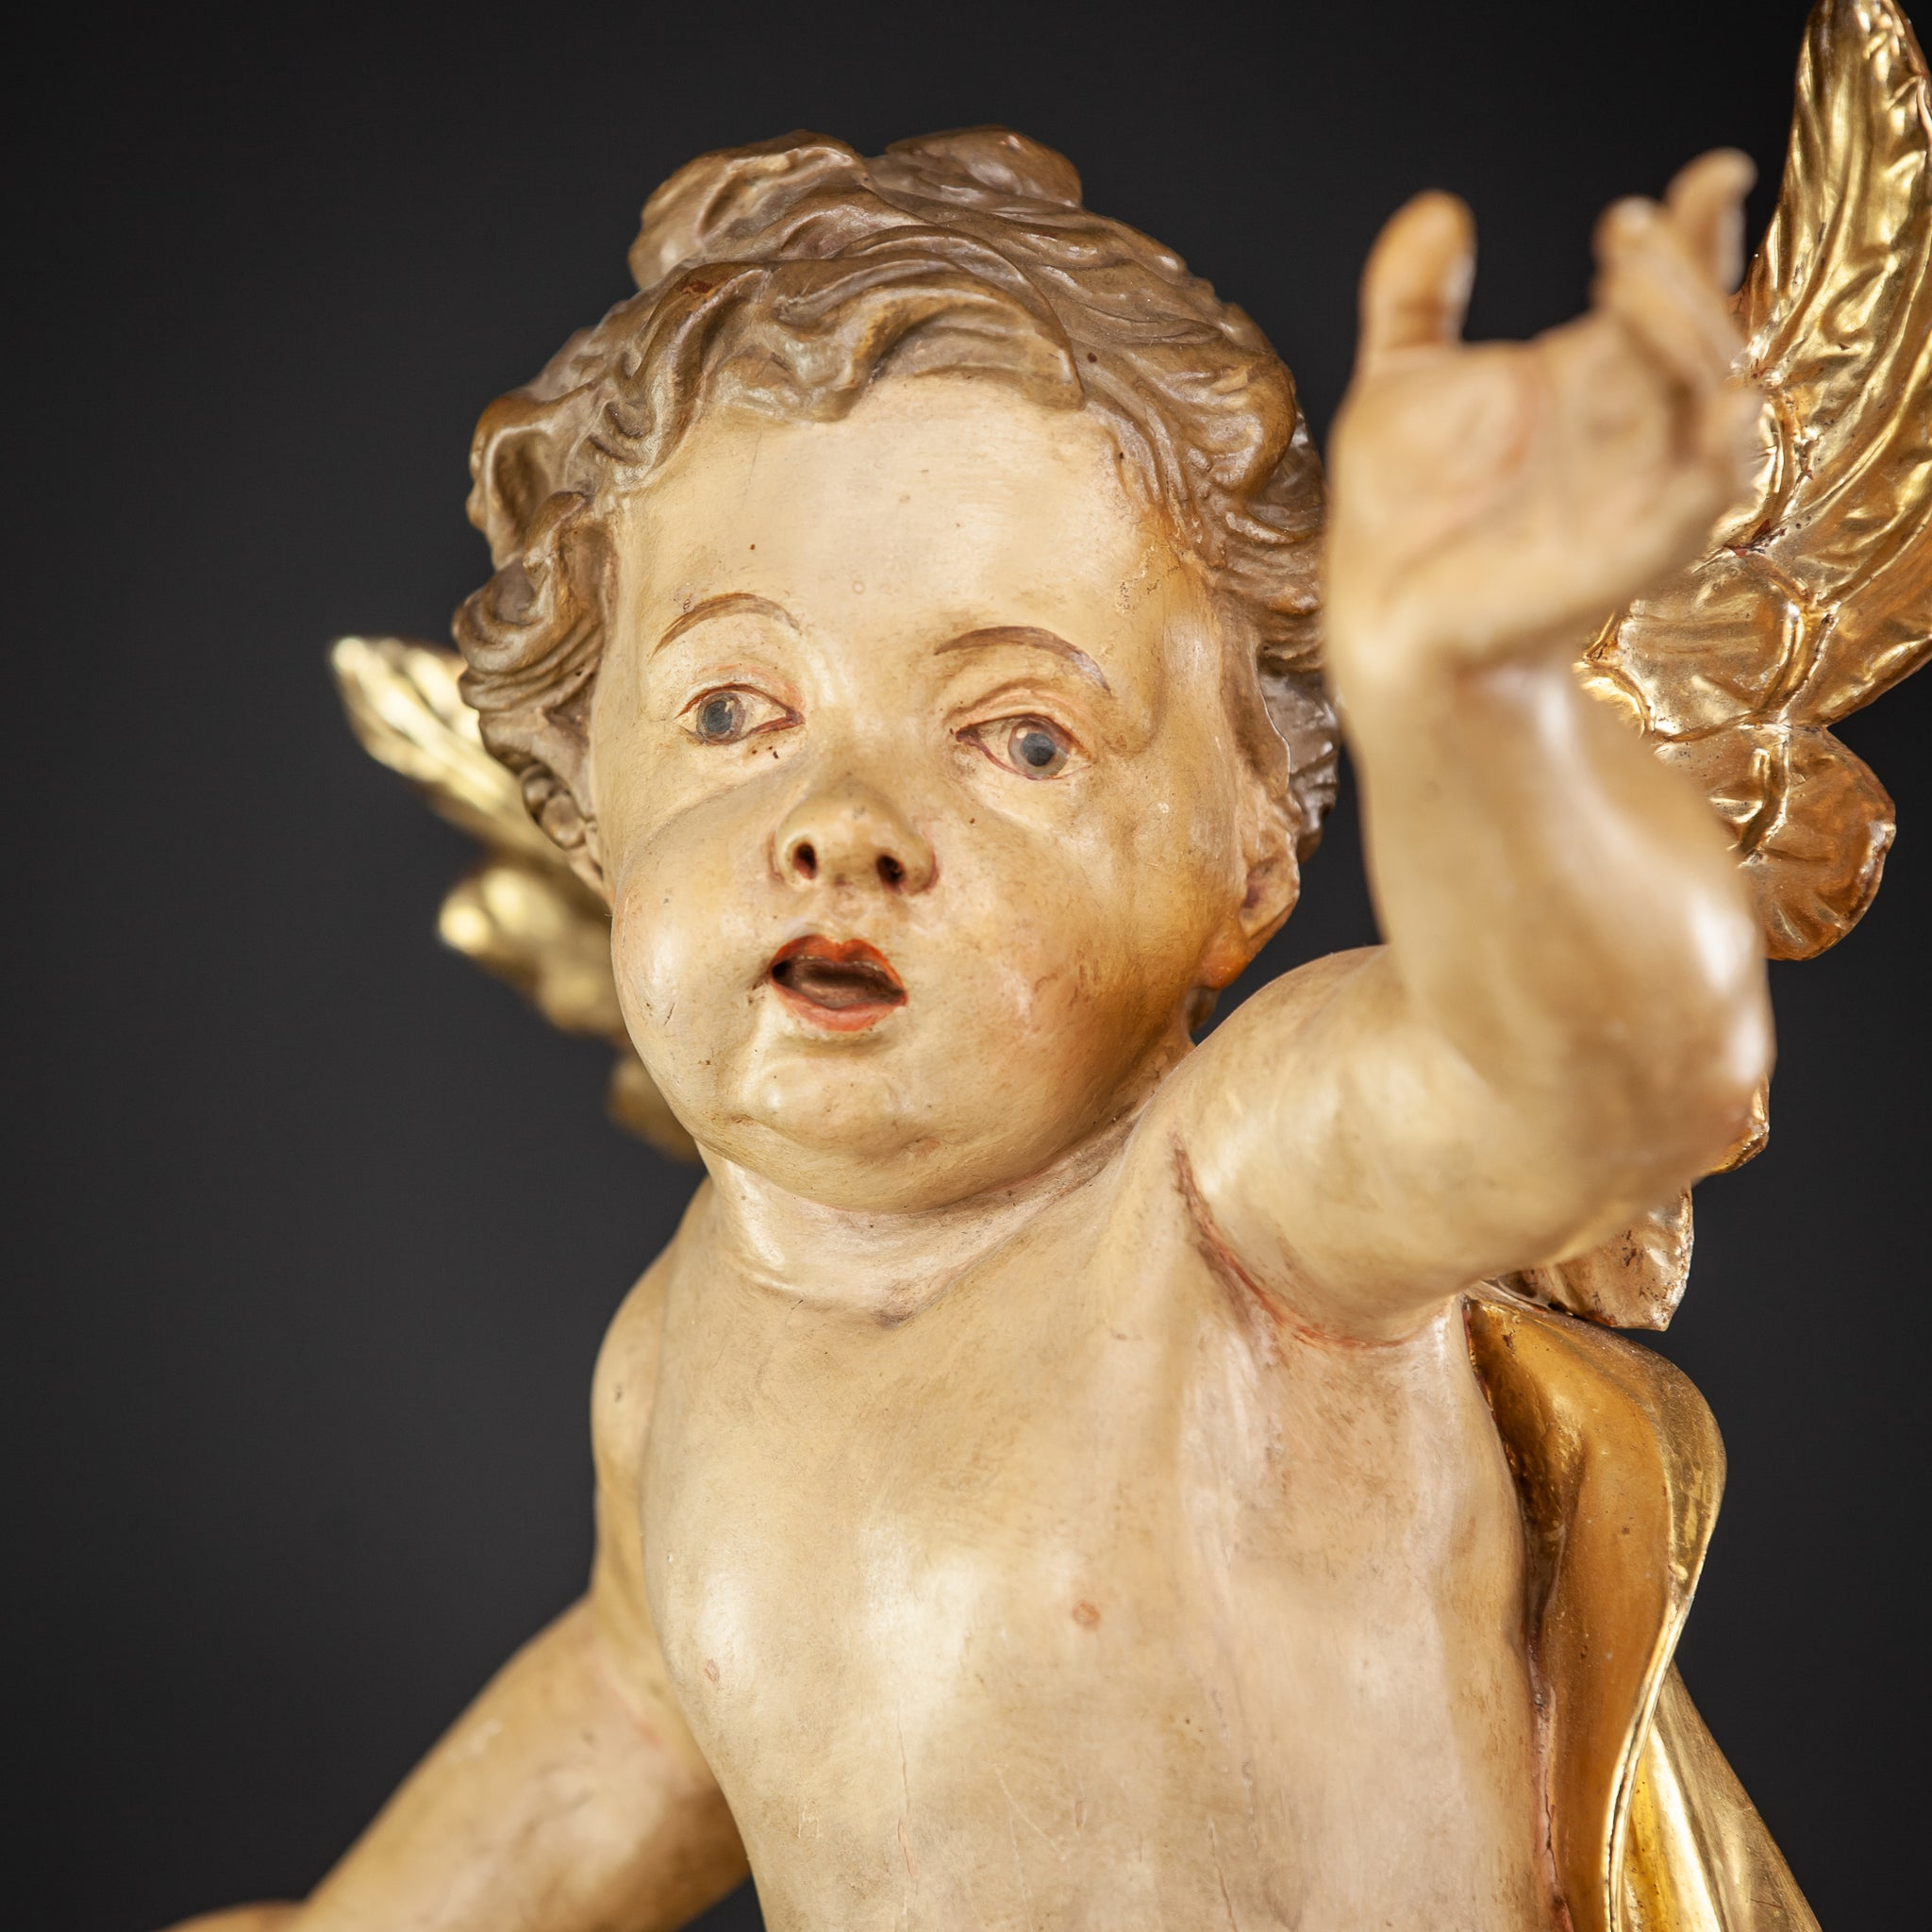 Baroque Angel Wood Carving Sculpture 20""